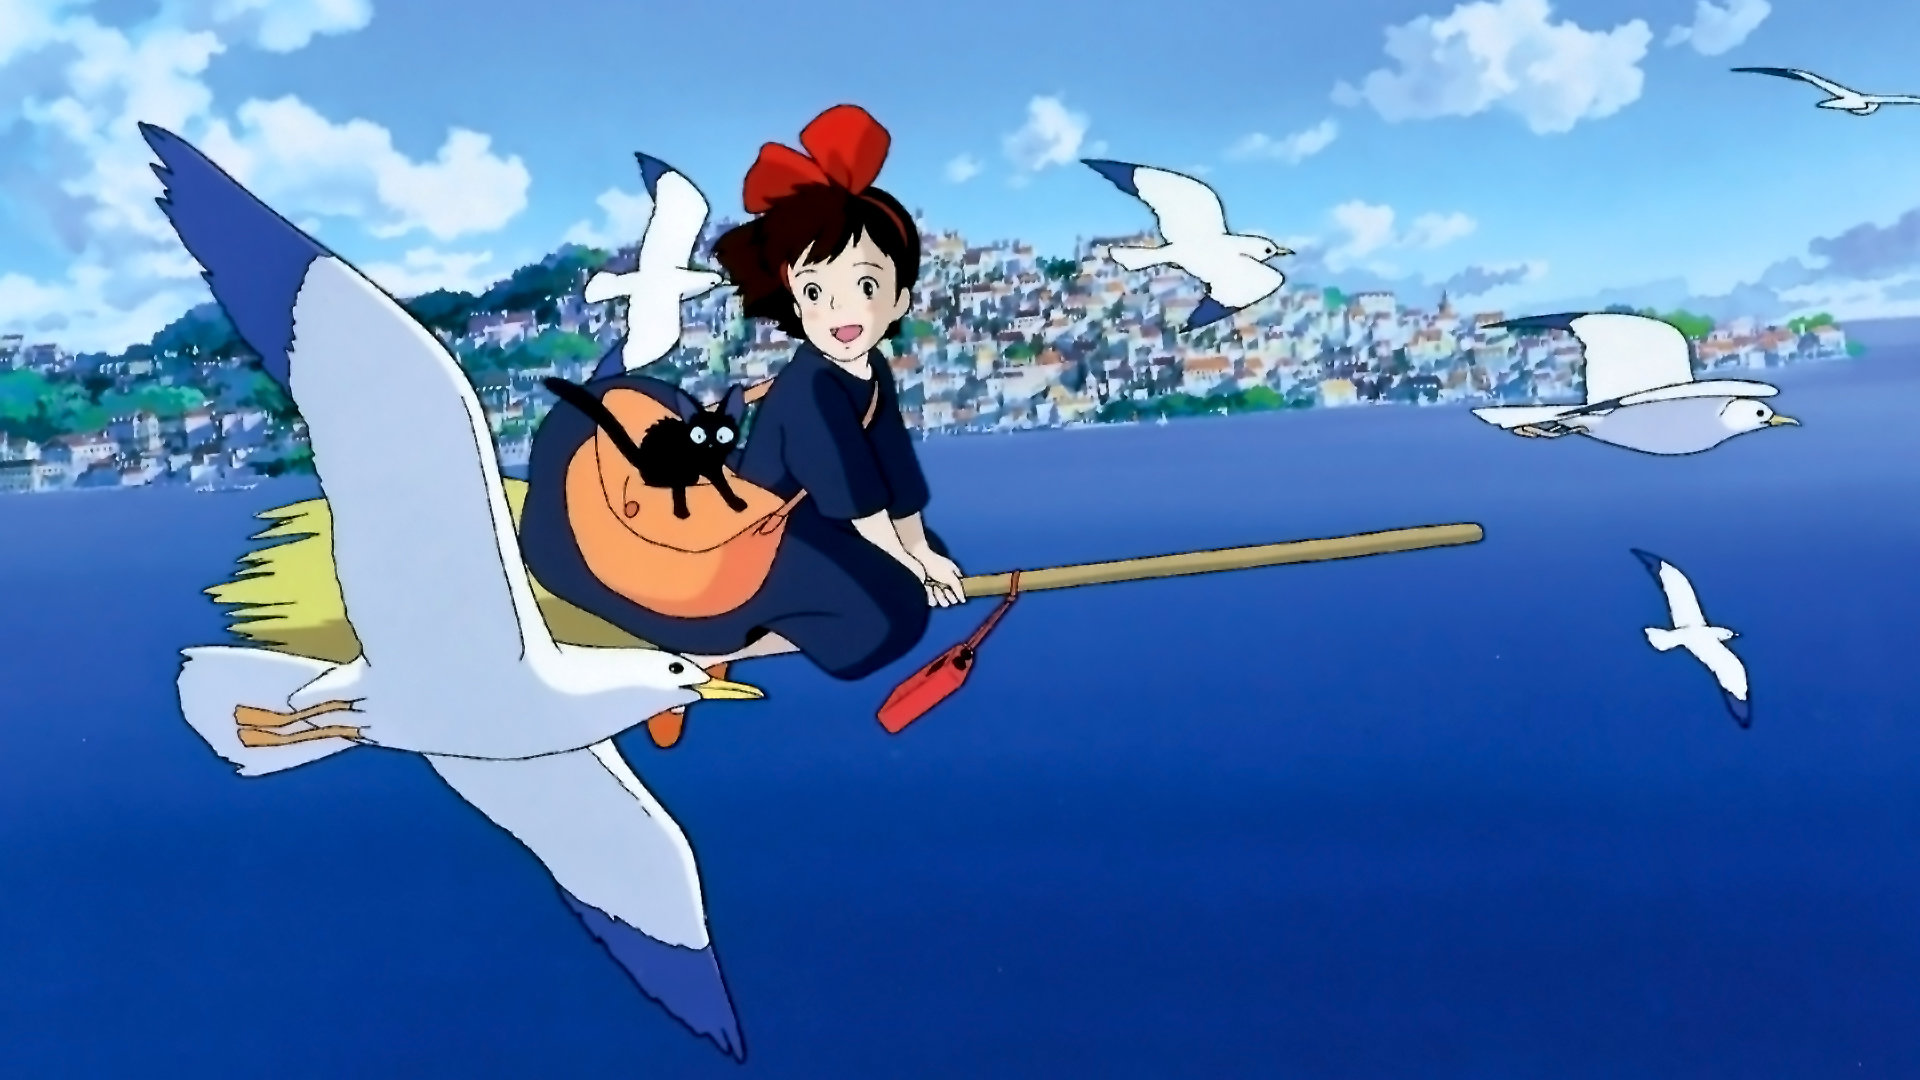 High resolution Kiki's Delivery Service full hd 1920x1080 wallpaper ID:360373 for computer